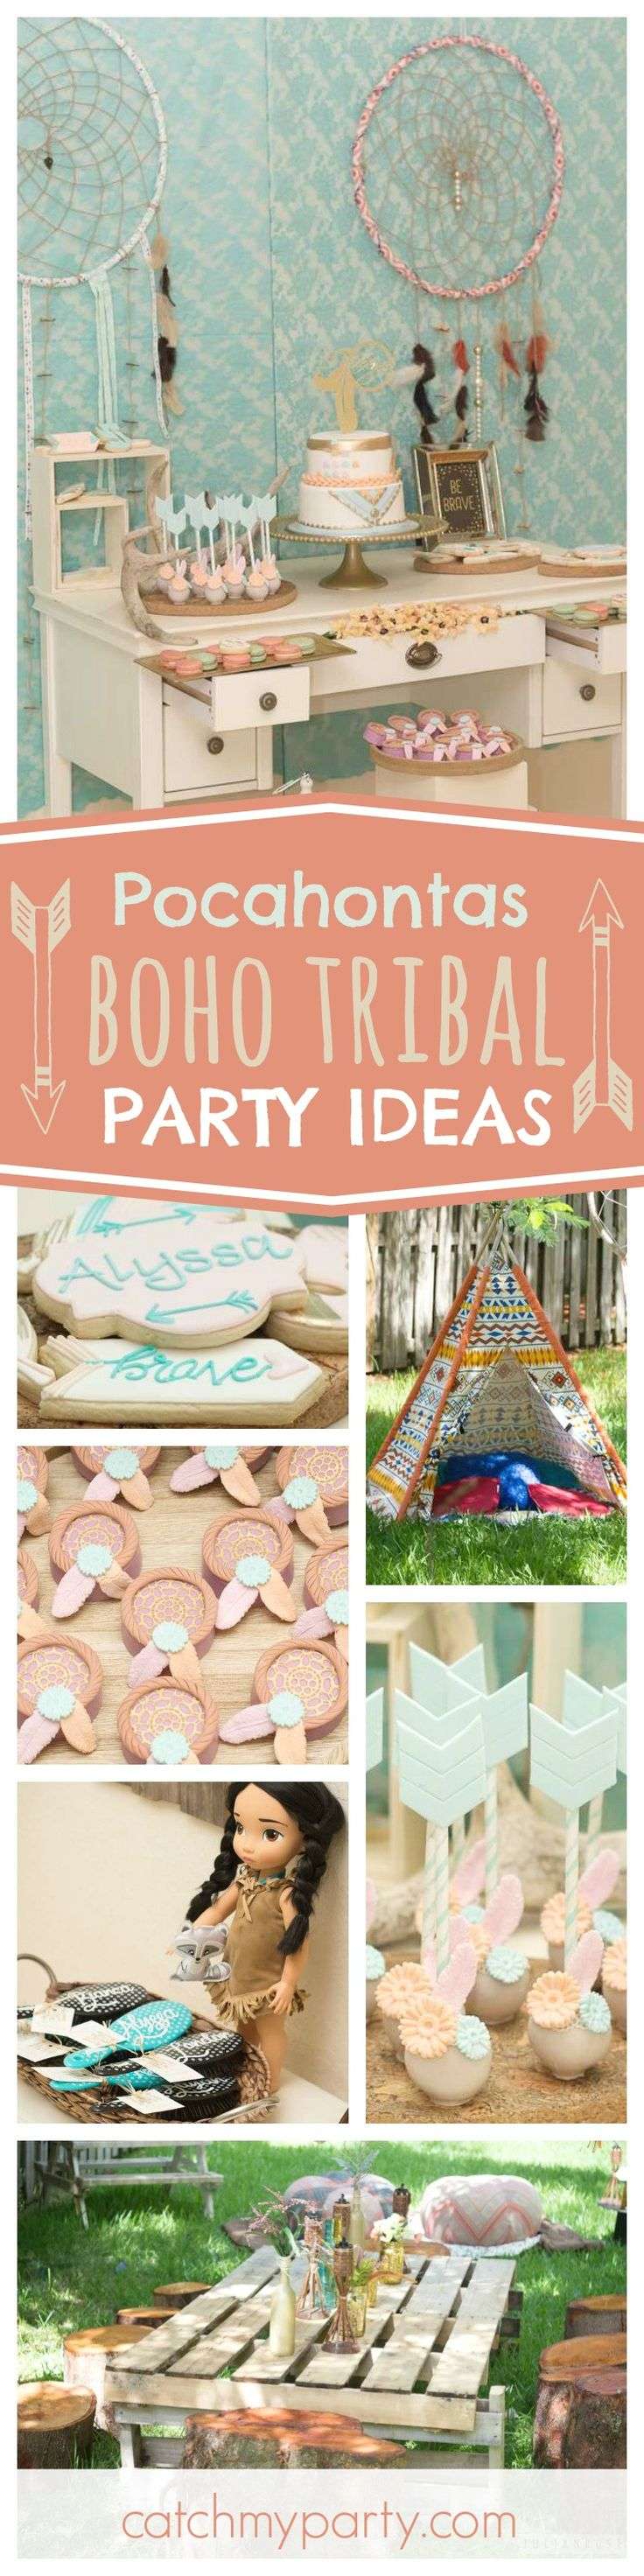 Don't miss this cute Boho Tribal Pocahontas birthday party. The cake pops are adorable!! See more party ideas and share yours at CatchMyParty.com